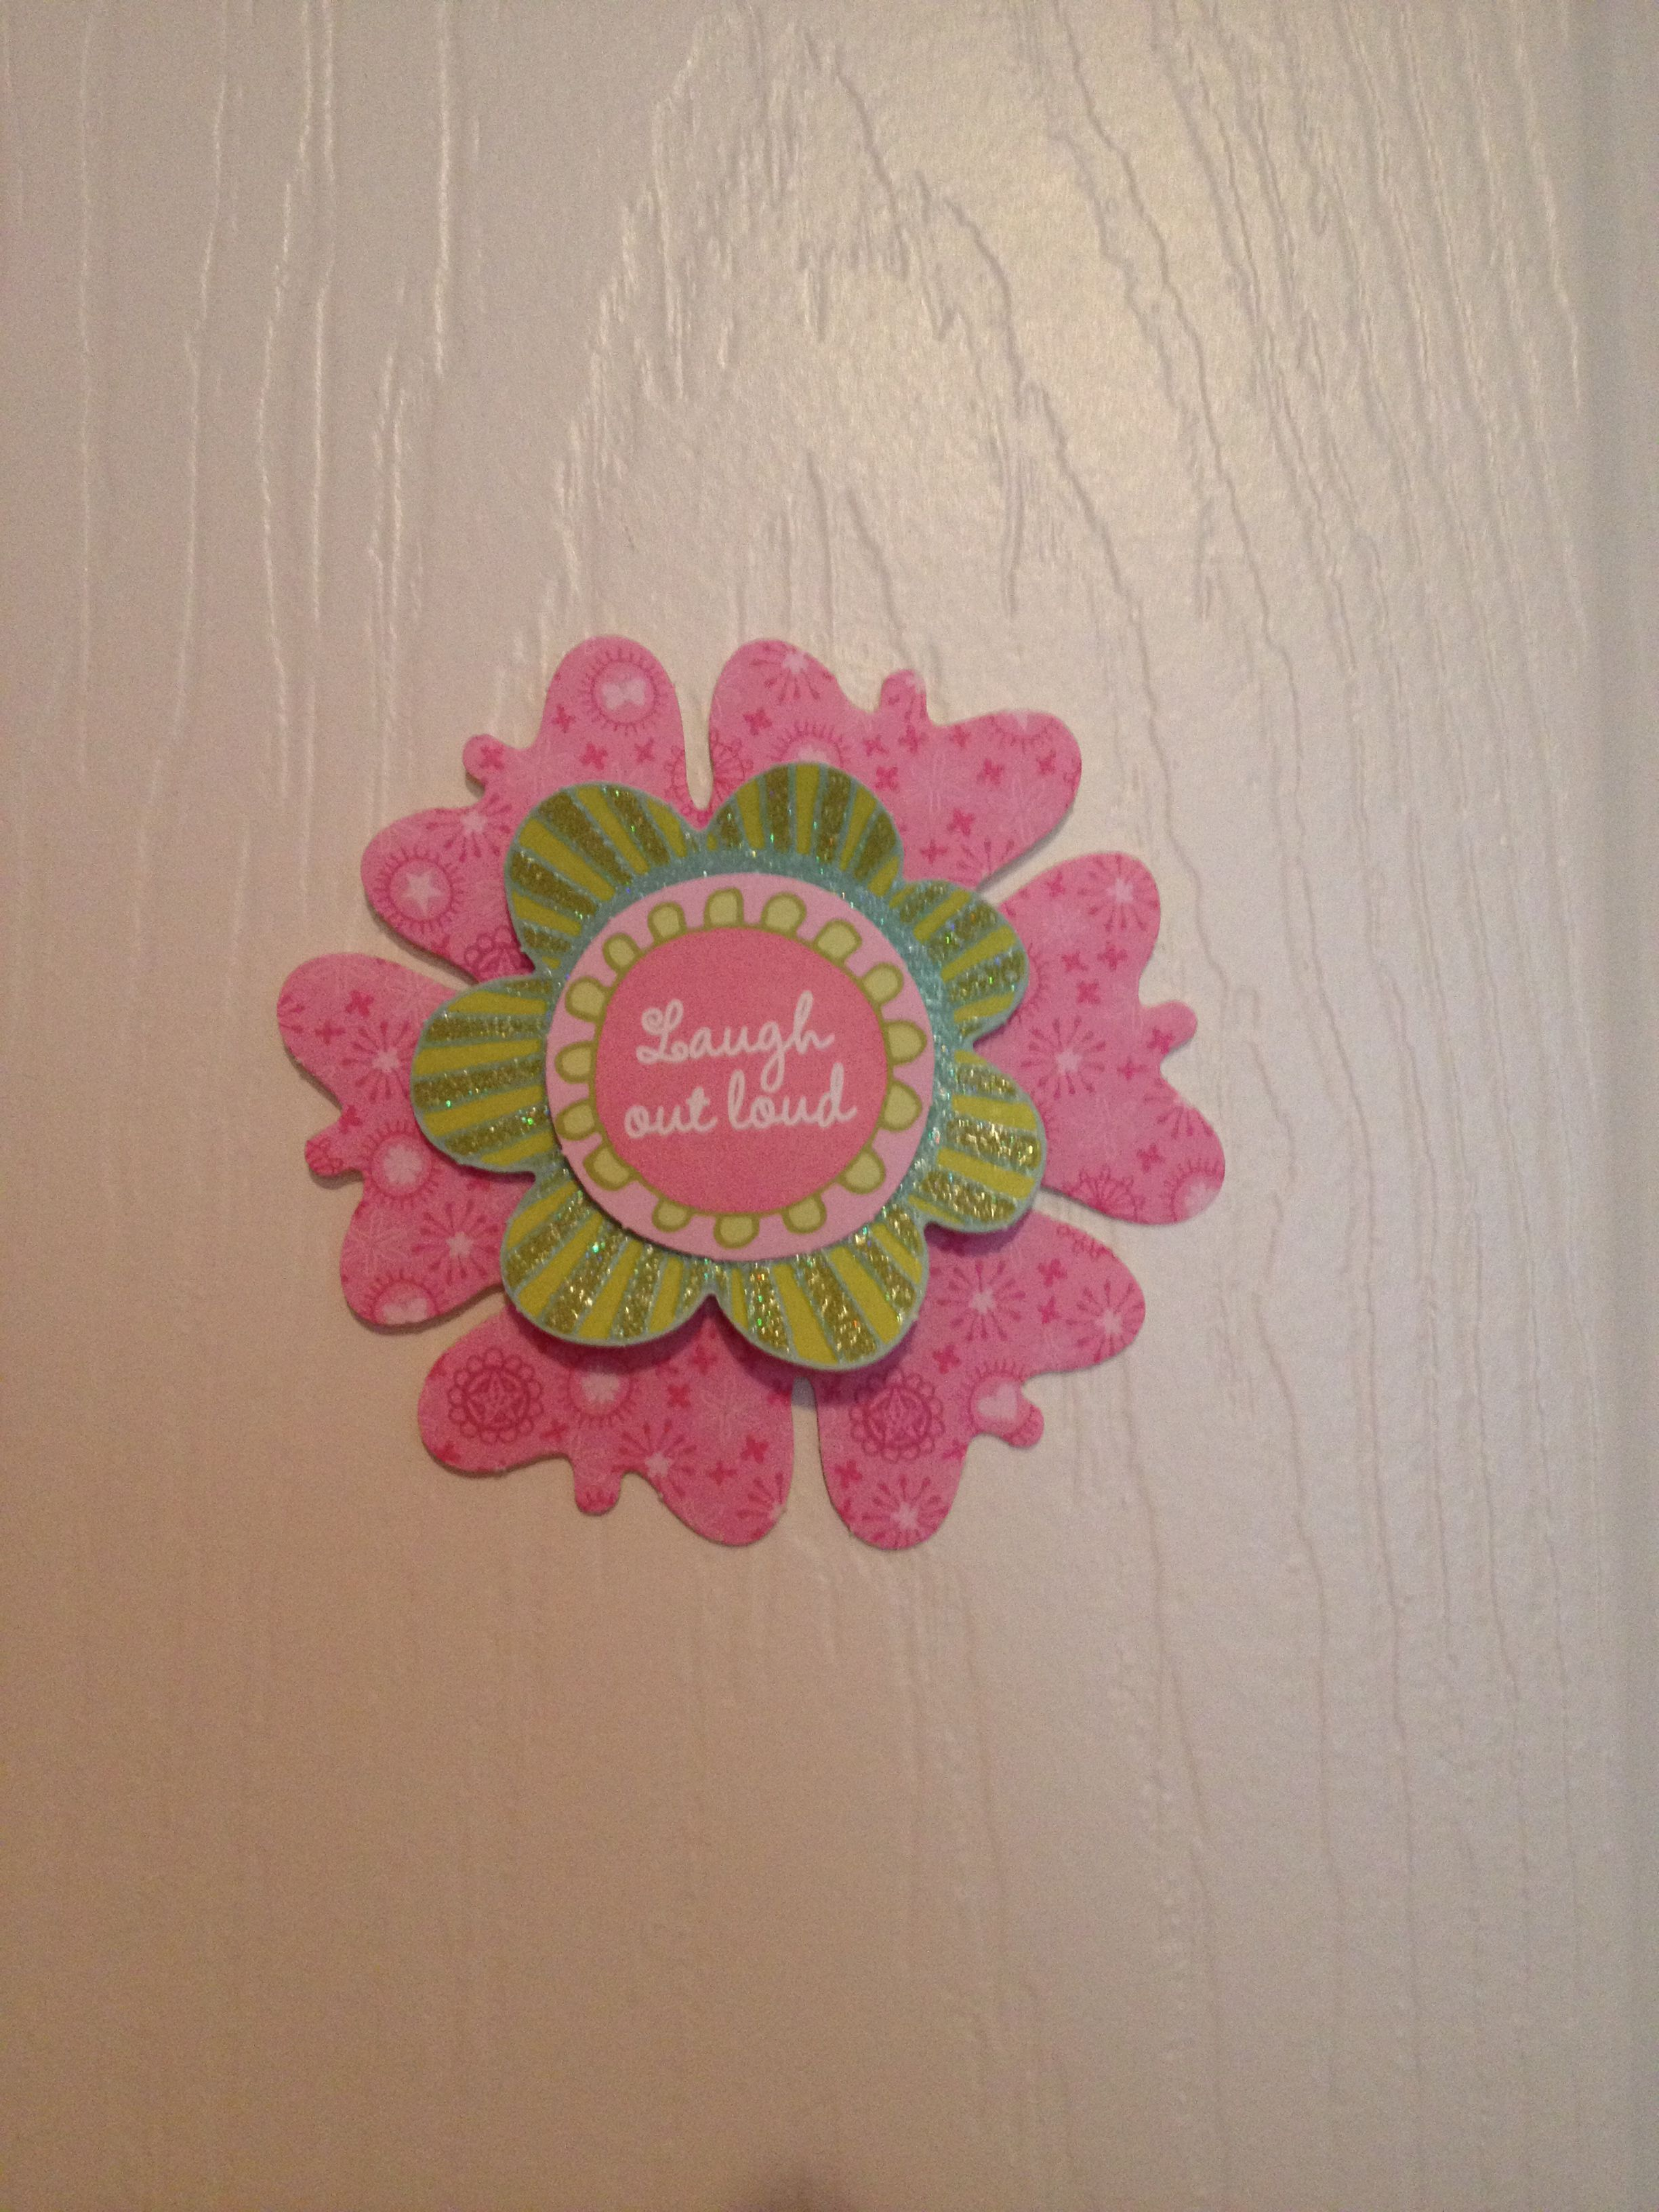 Scrapbook paper flowers all you need to do is take scrap booking scrapbook paper flowers all you need to do is take scrap booking paper cut out the shapes and tape it together or sometimes theyll come in kits mightylinksfo